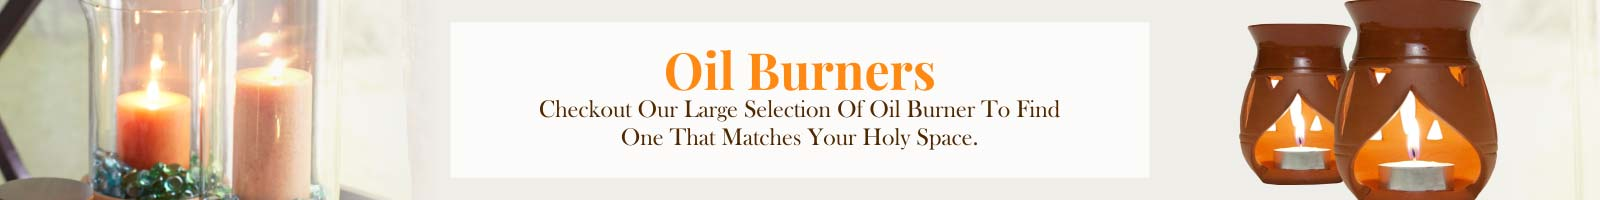 Oil Burners